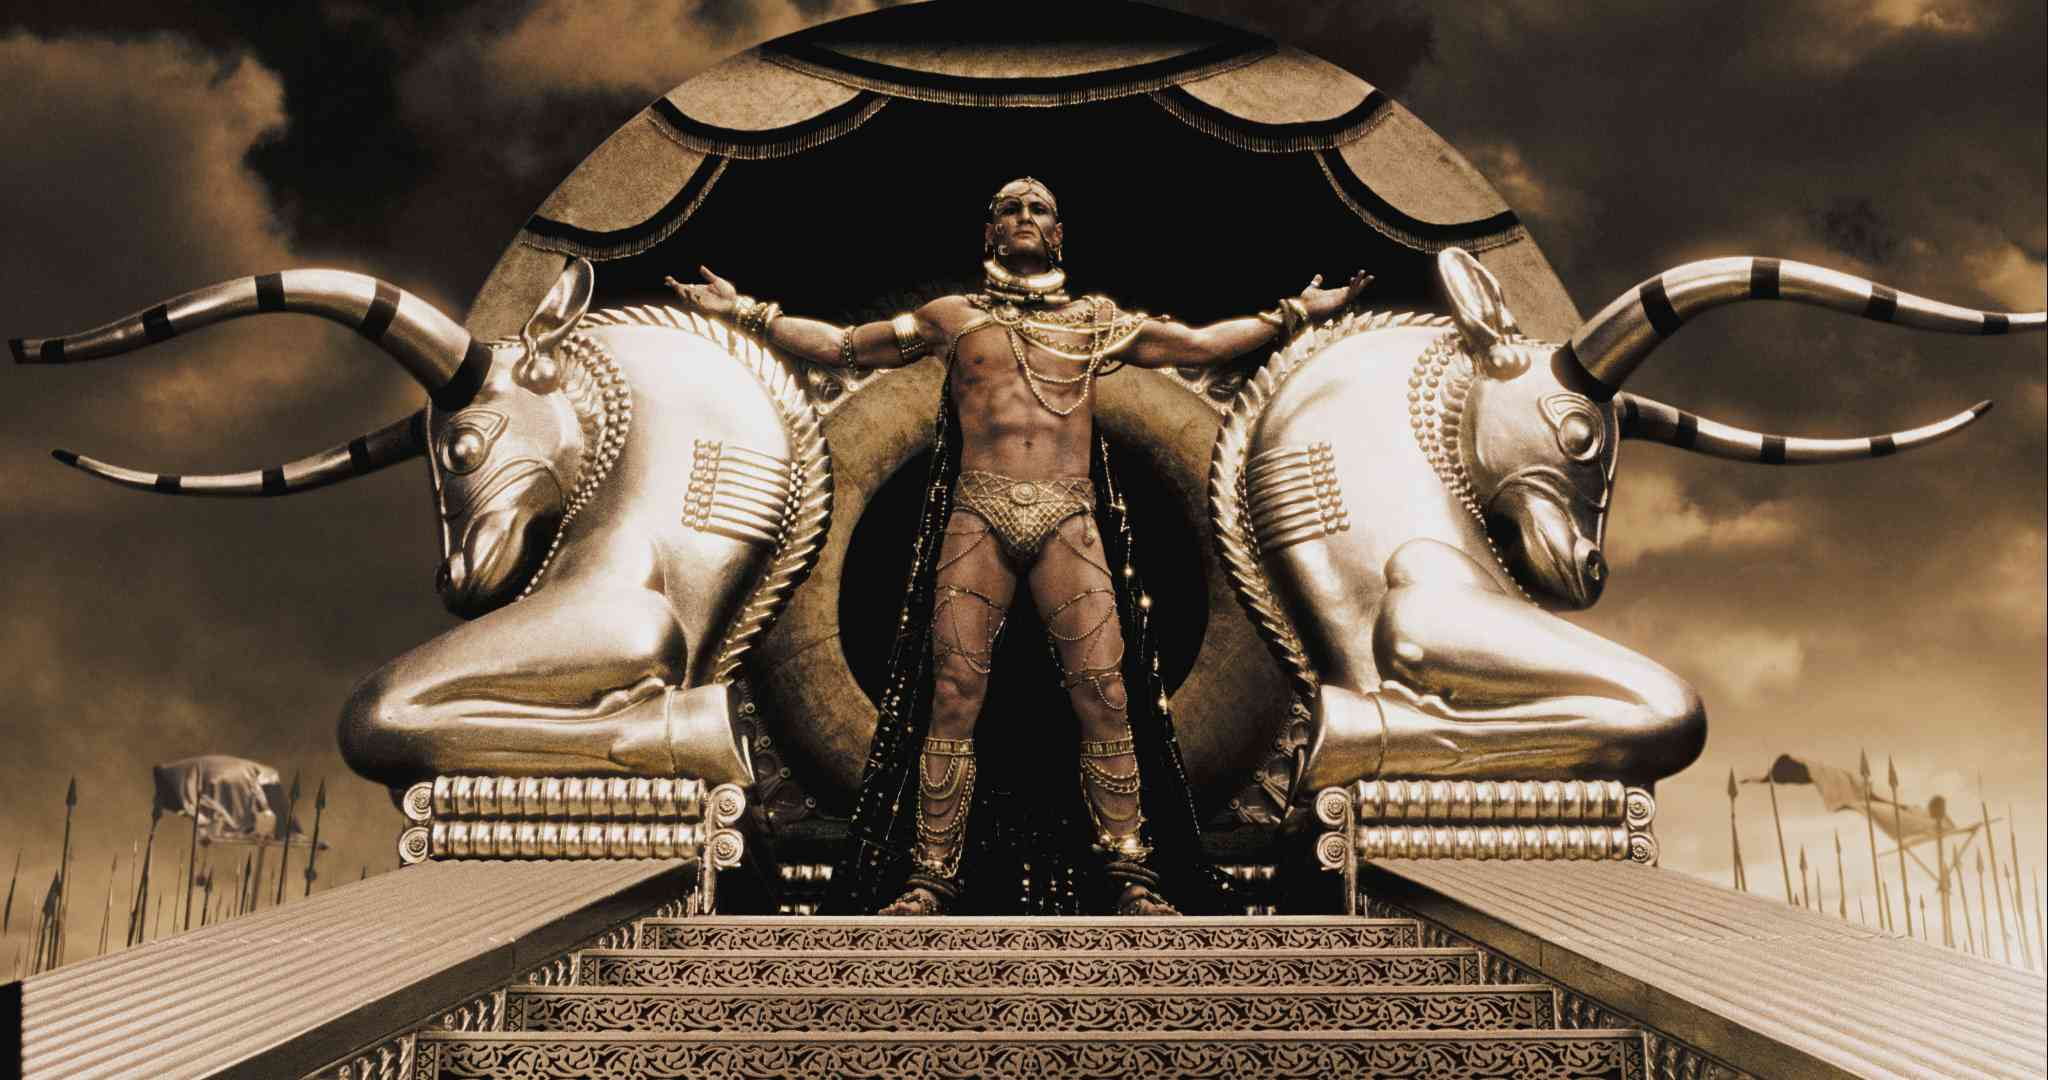 rodrigo santoro plans to reprise xerxes in new 300